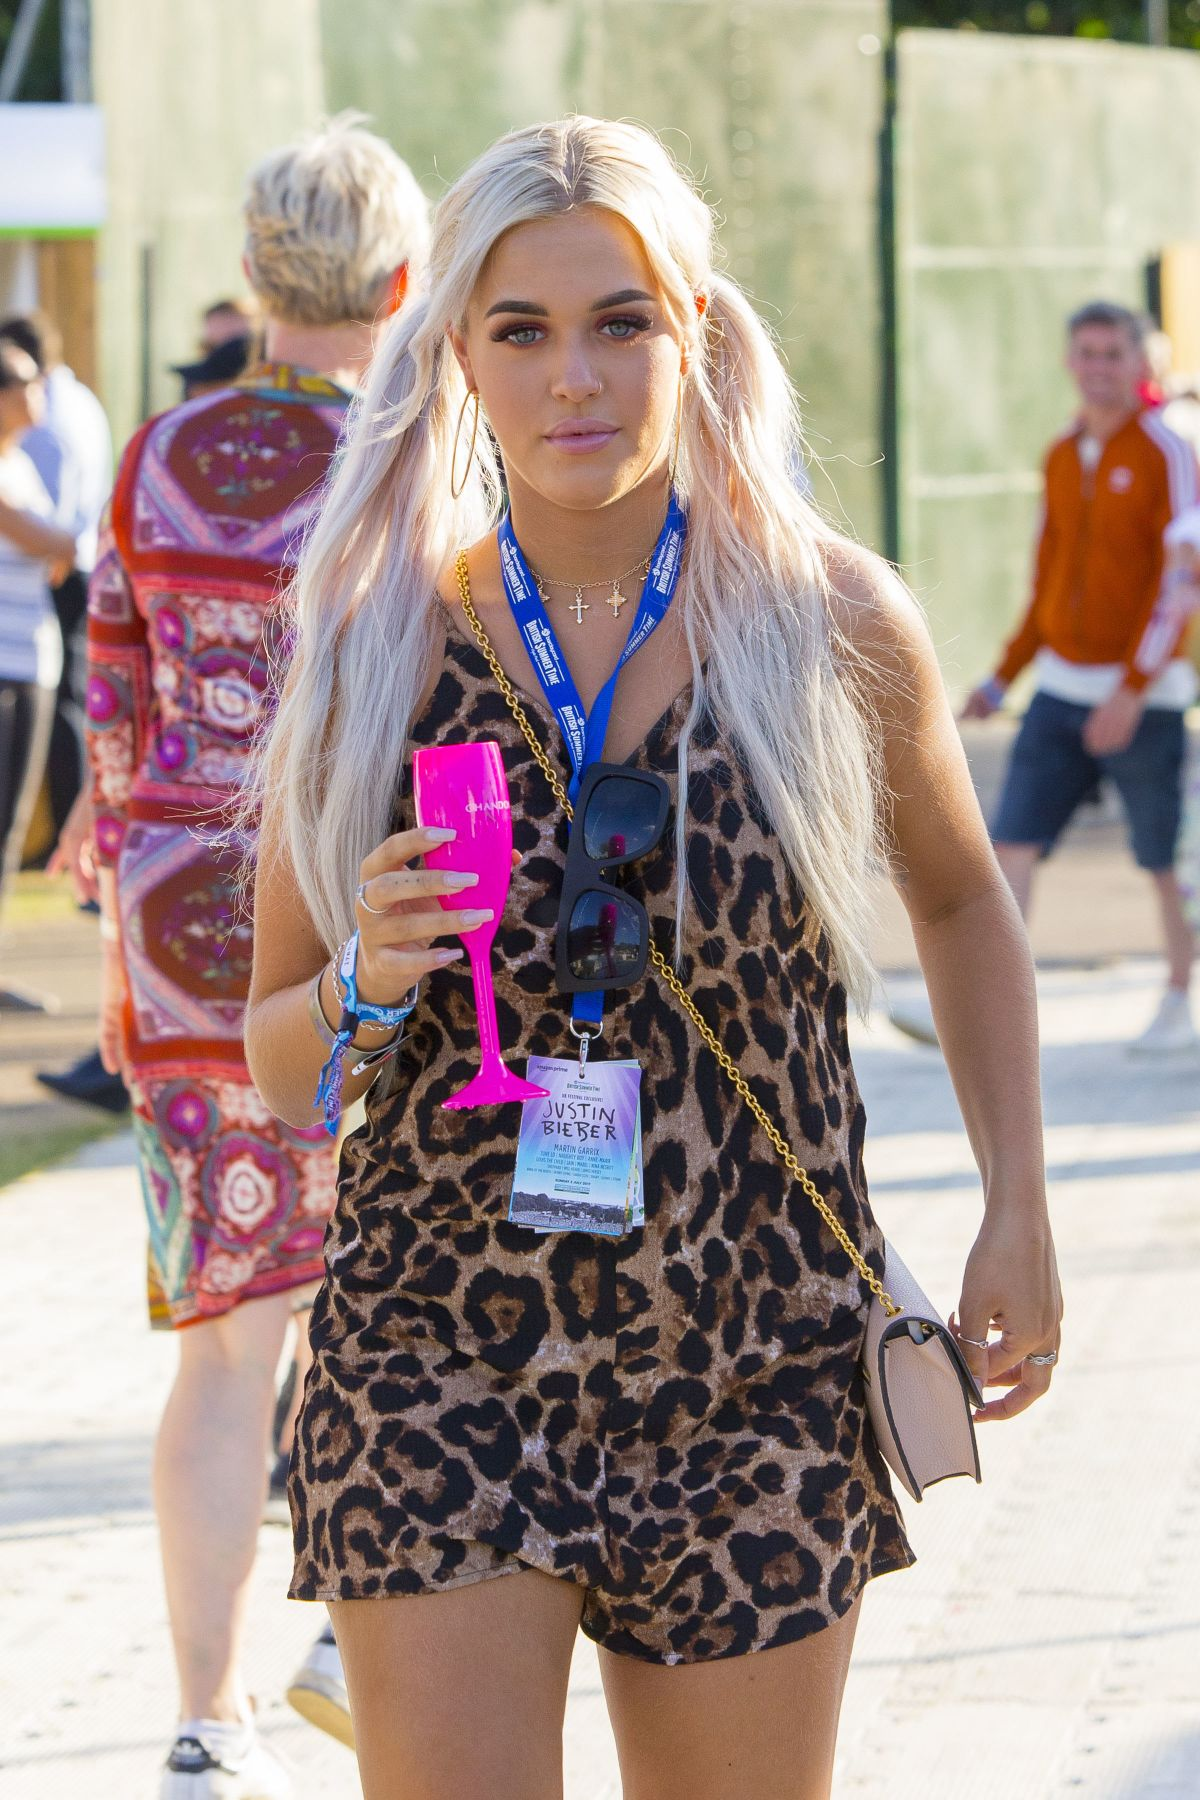 LOTTIE TOMLINSON at British Summer Time Festival in London 07/02/2017